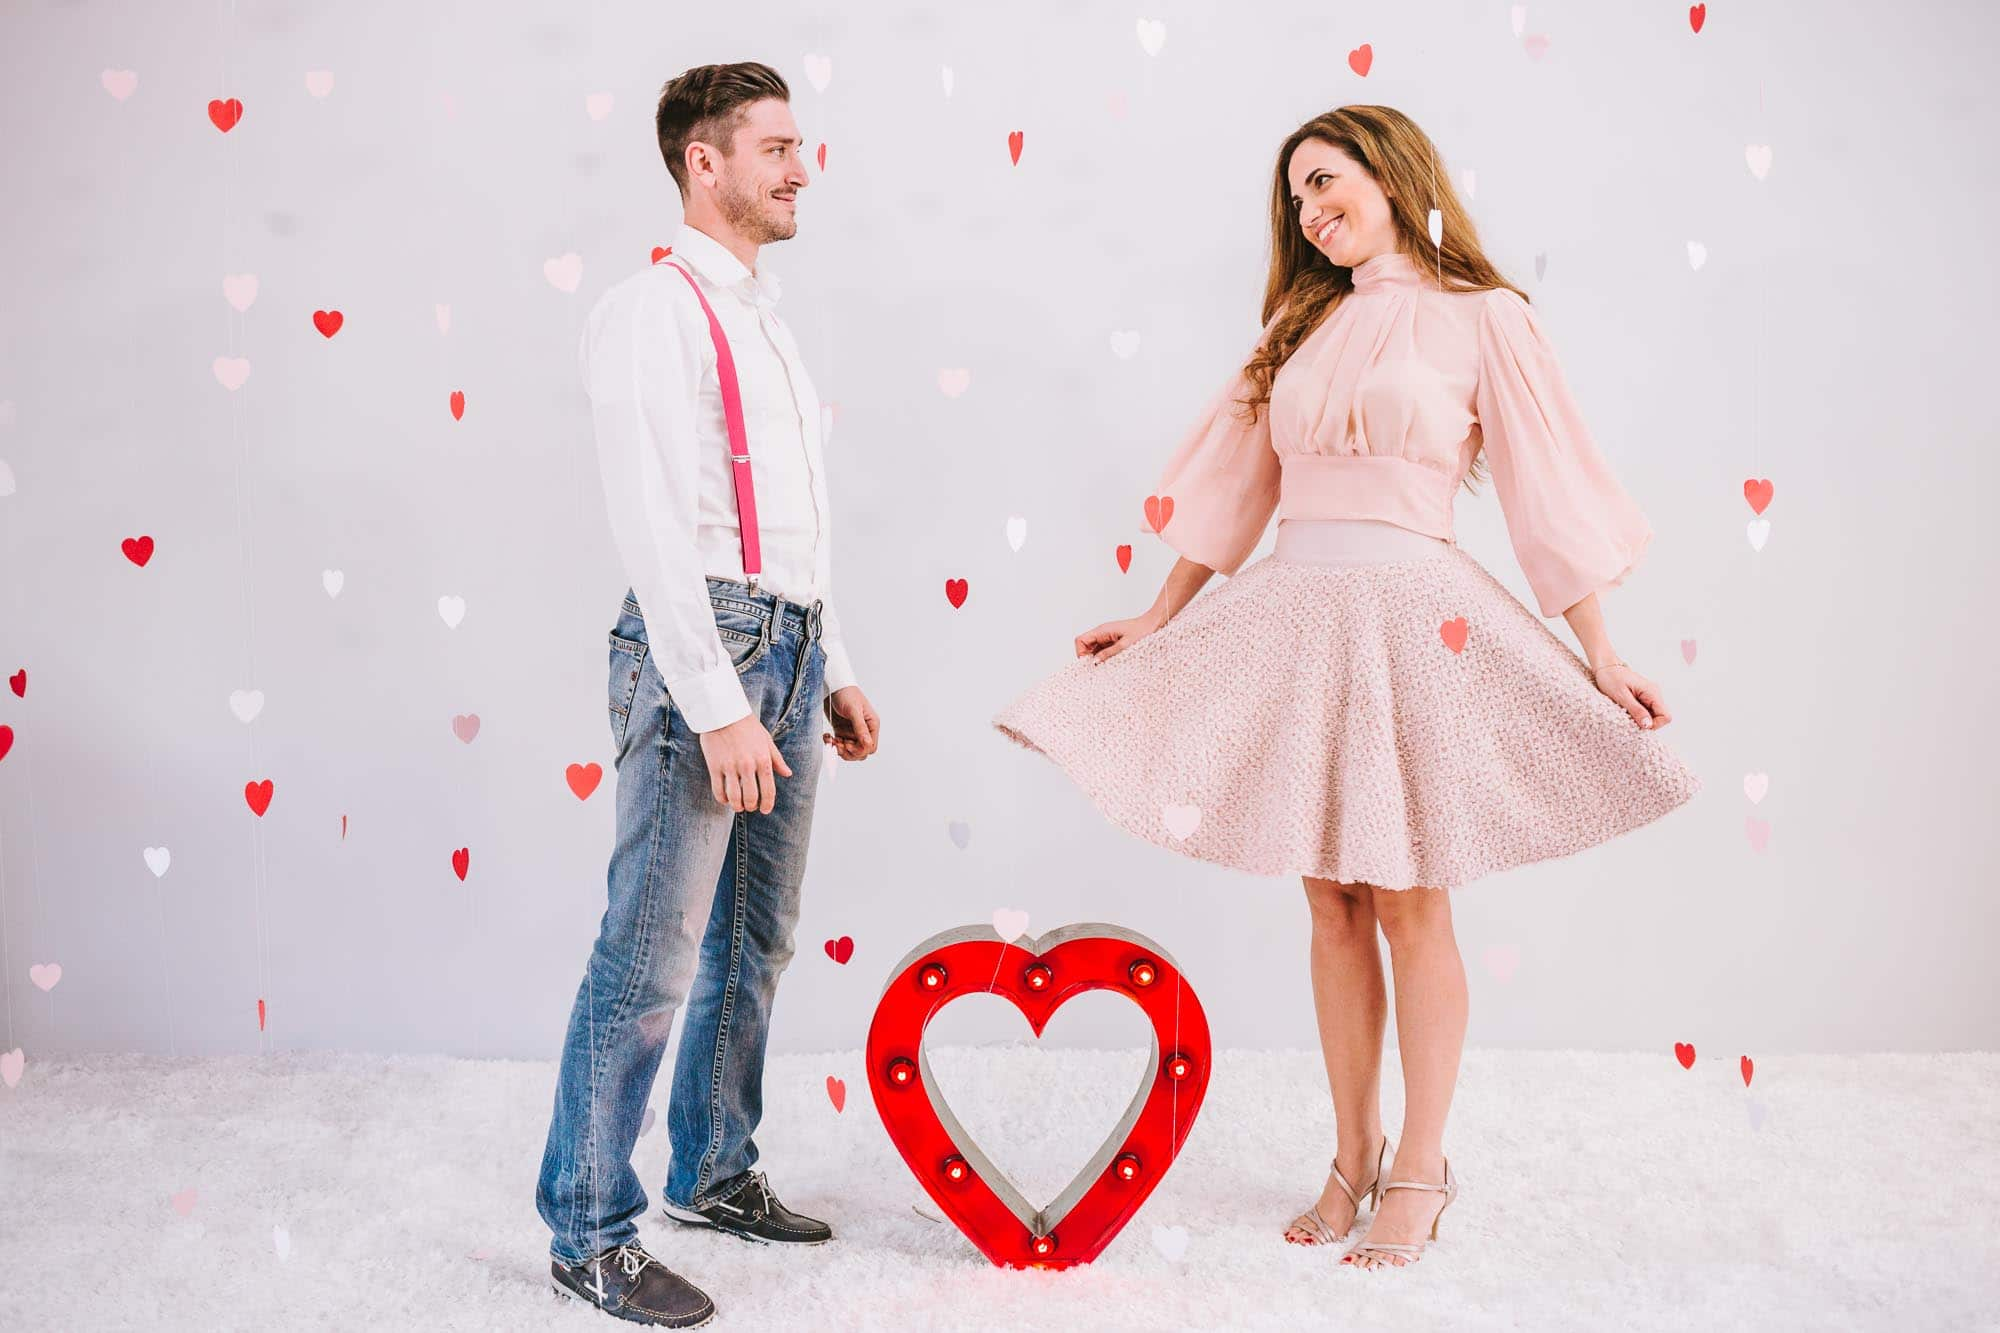 A Hollywood Valentine's photo shoot